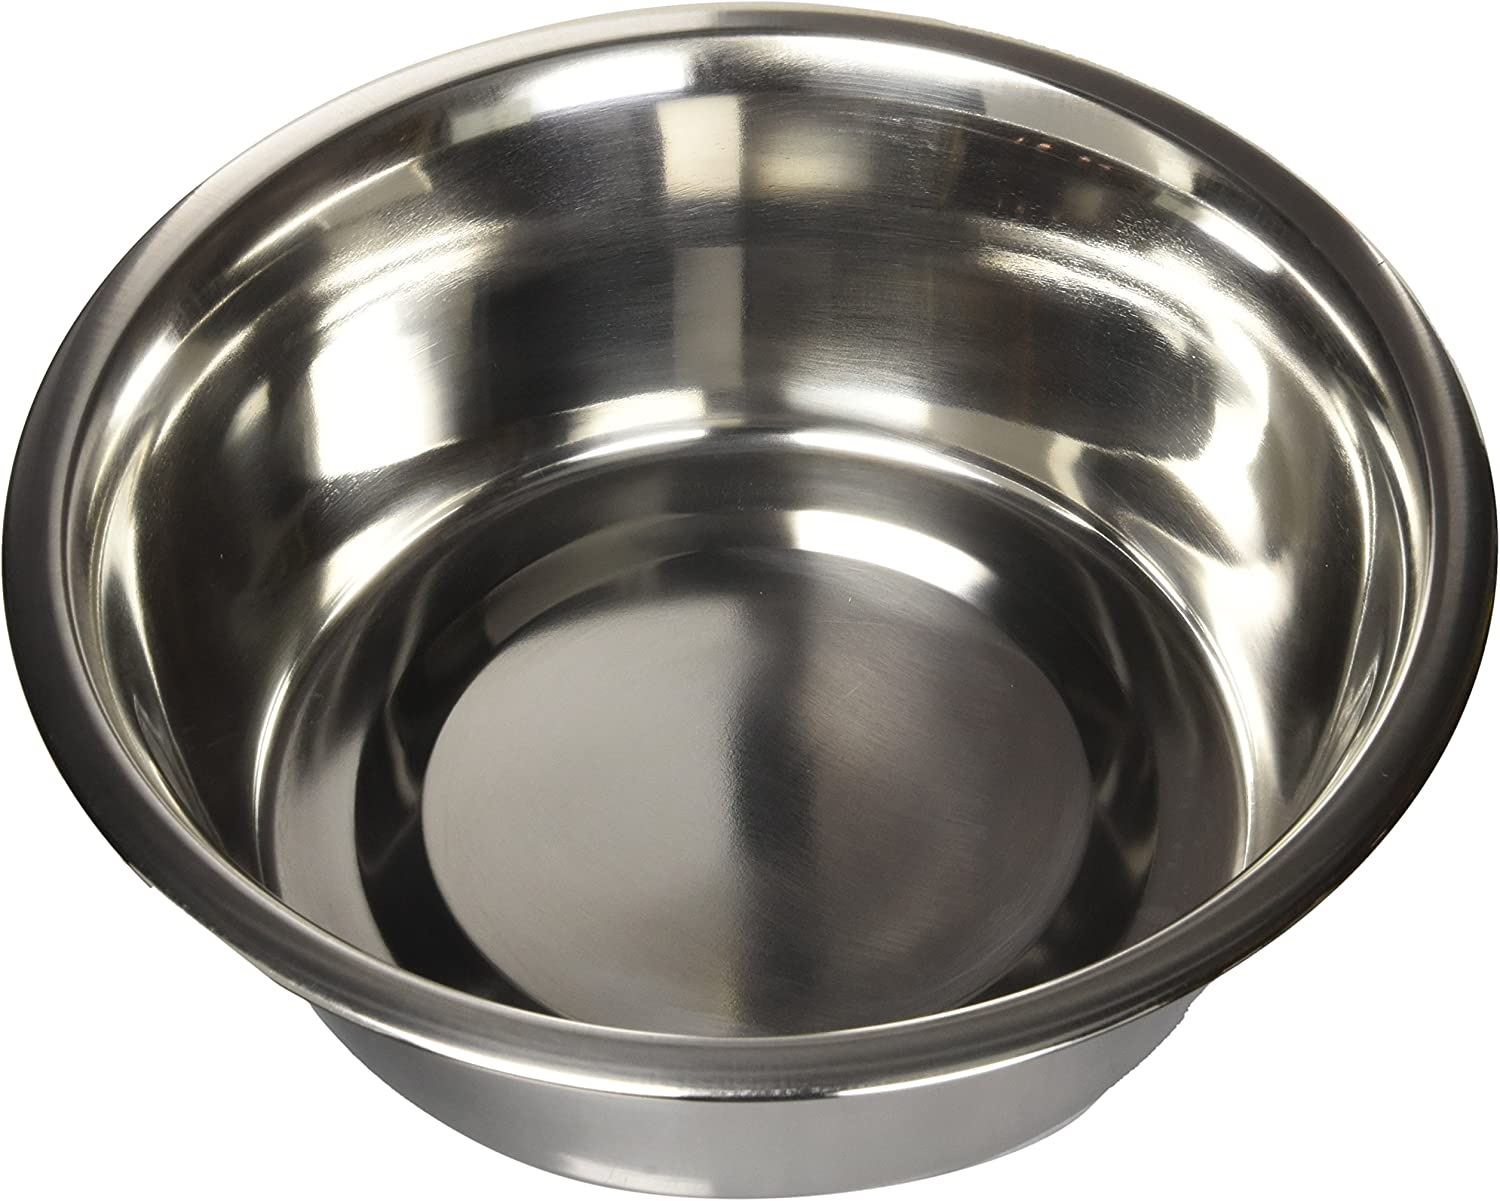 Dogit Stainless Steel Dog Bowl for Water or Food, Heavy Duty and Solid Construction, Holds 68 Fluid Ounces